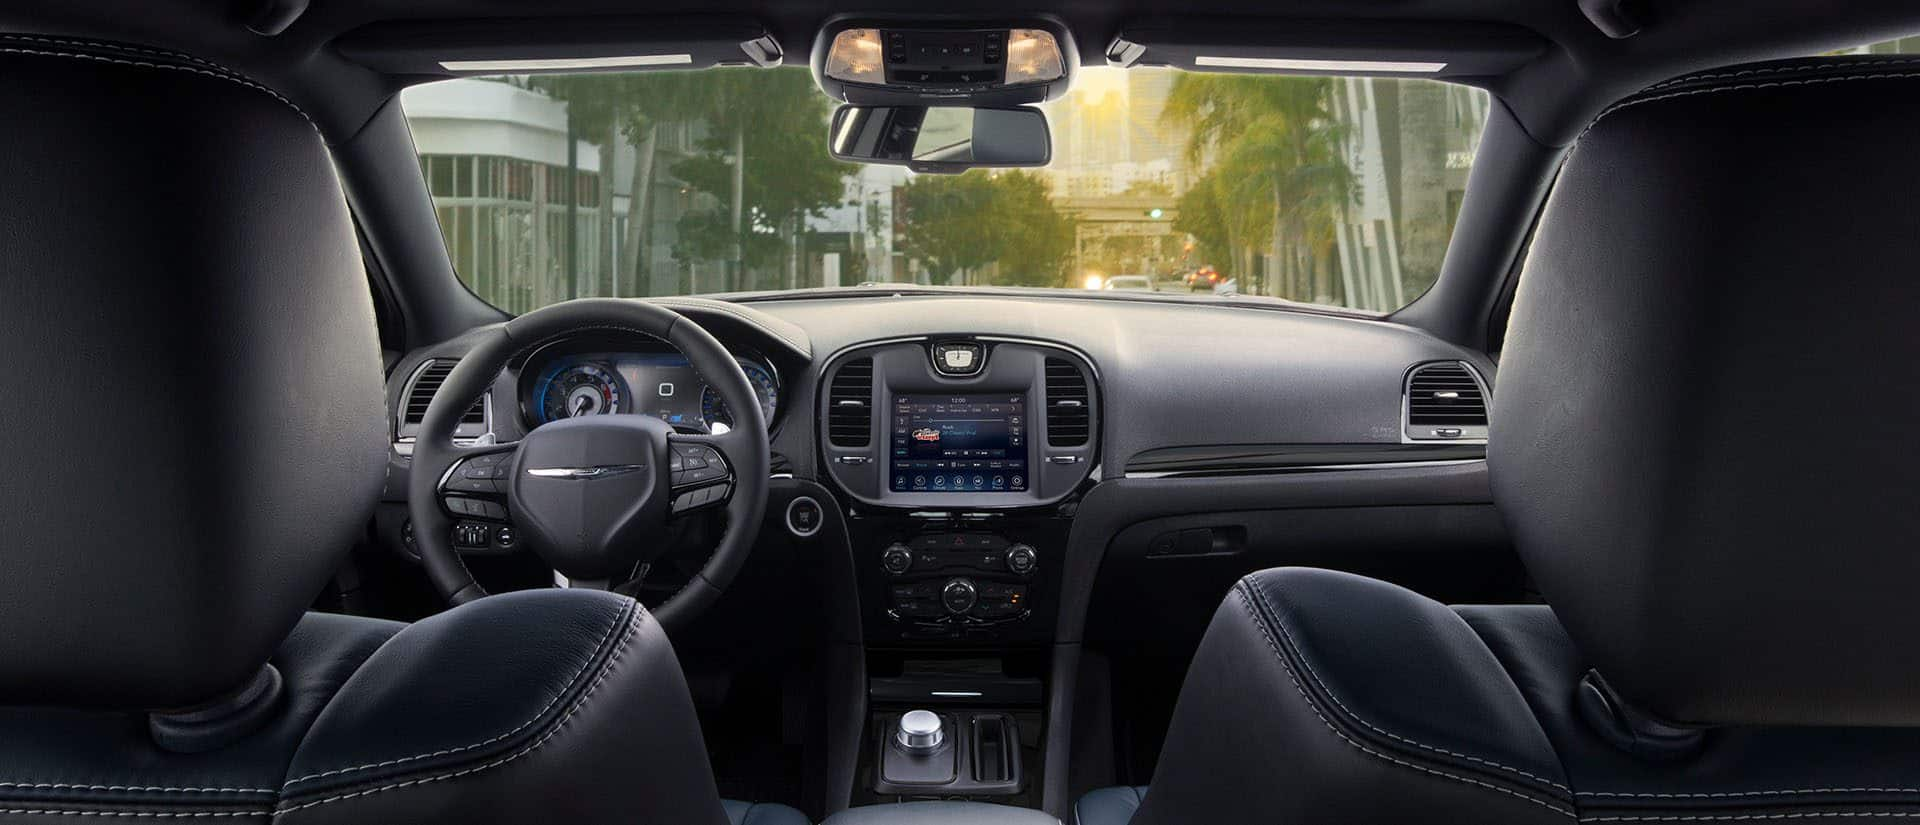 2018 Chrysler 300 Smart Interior Features